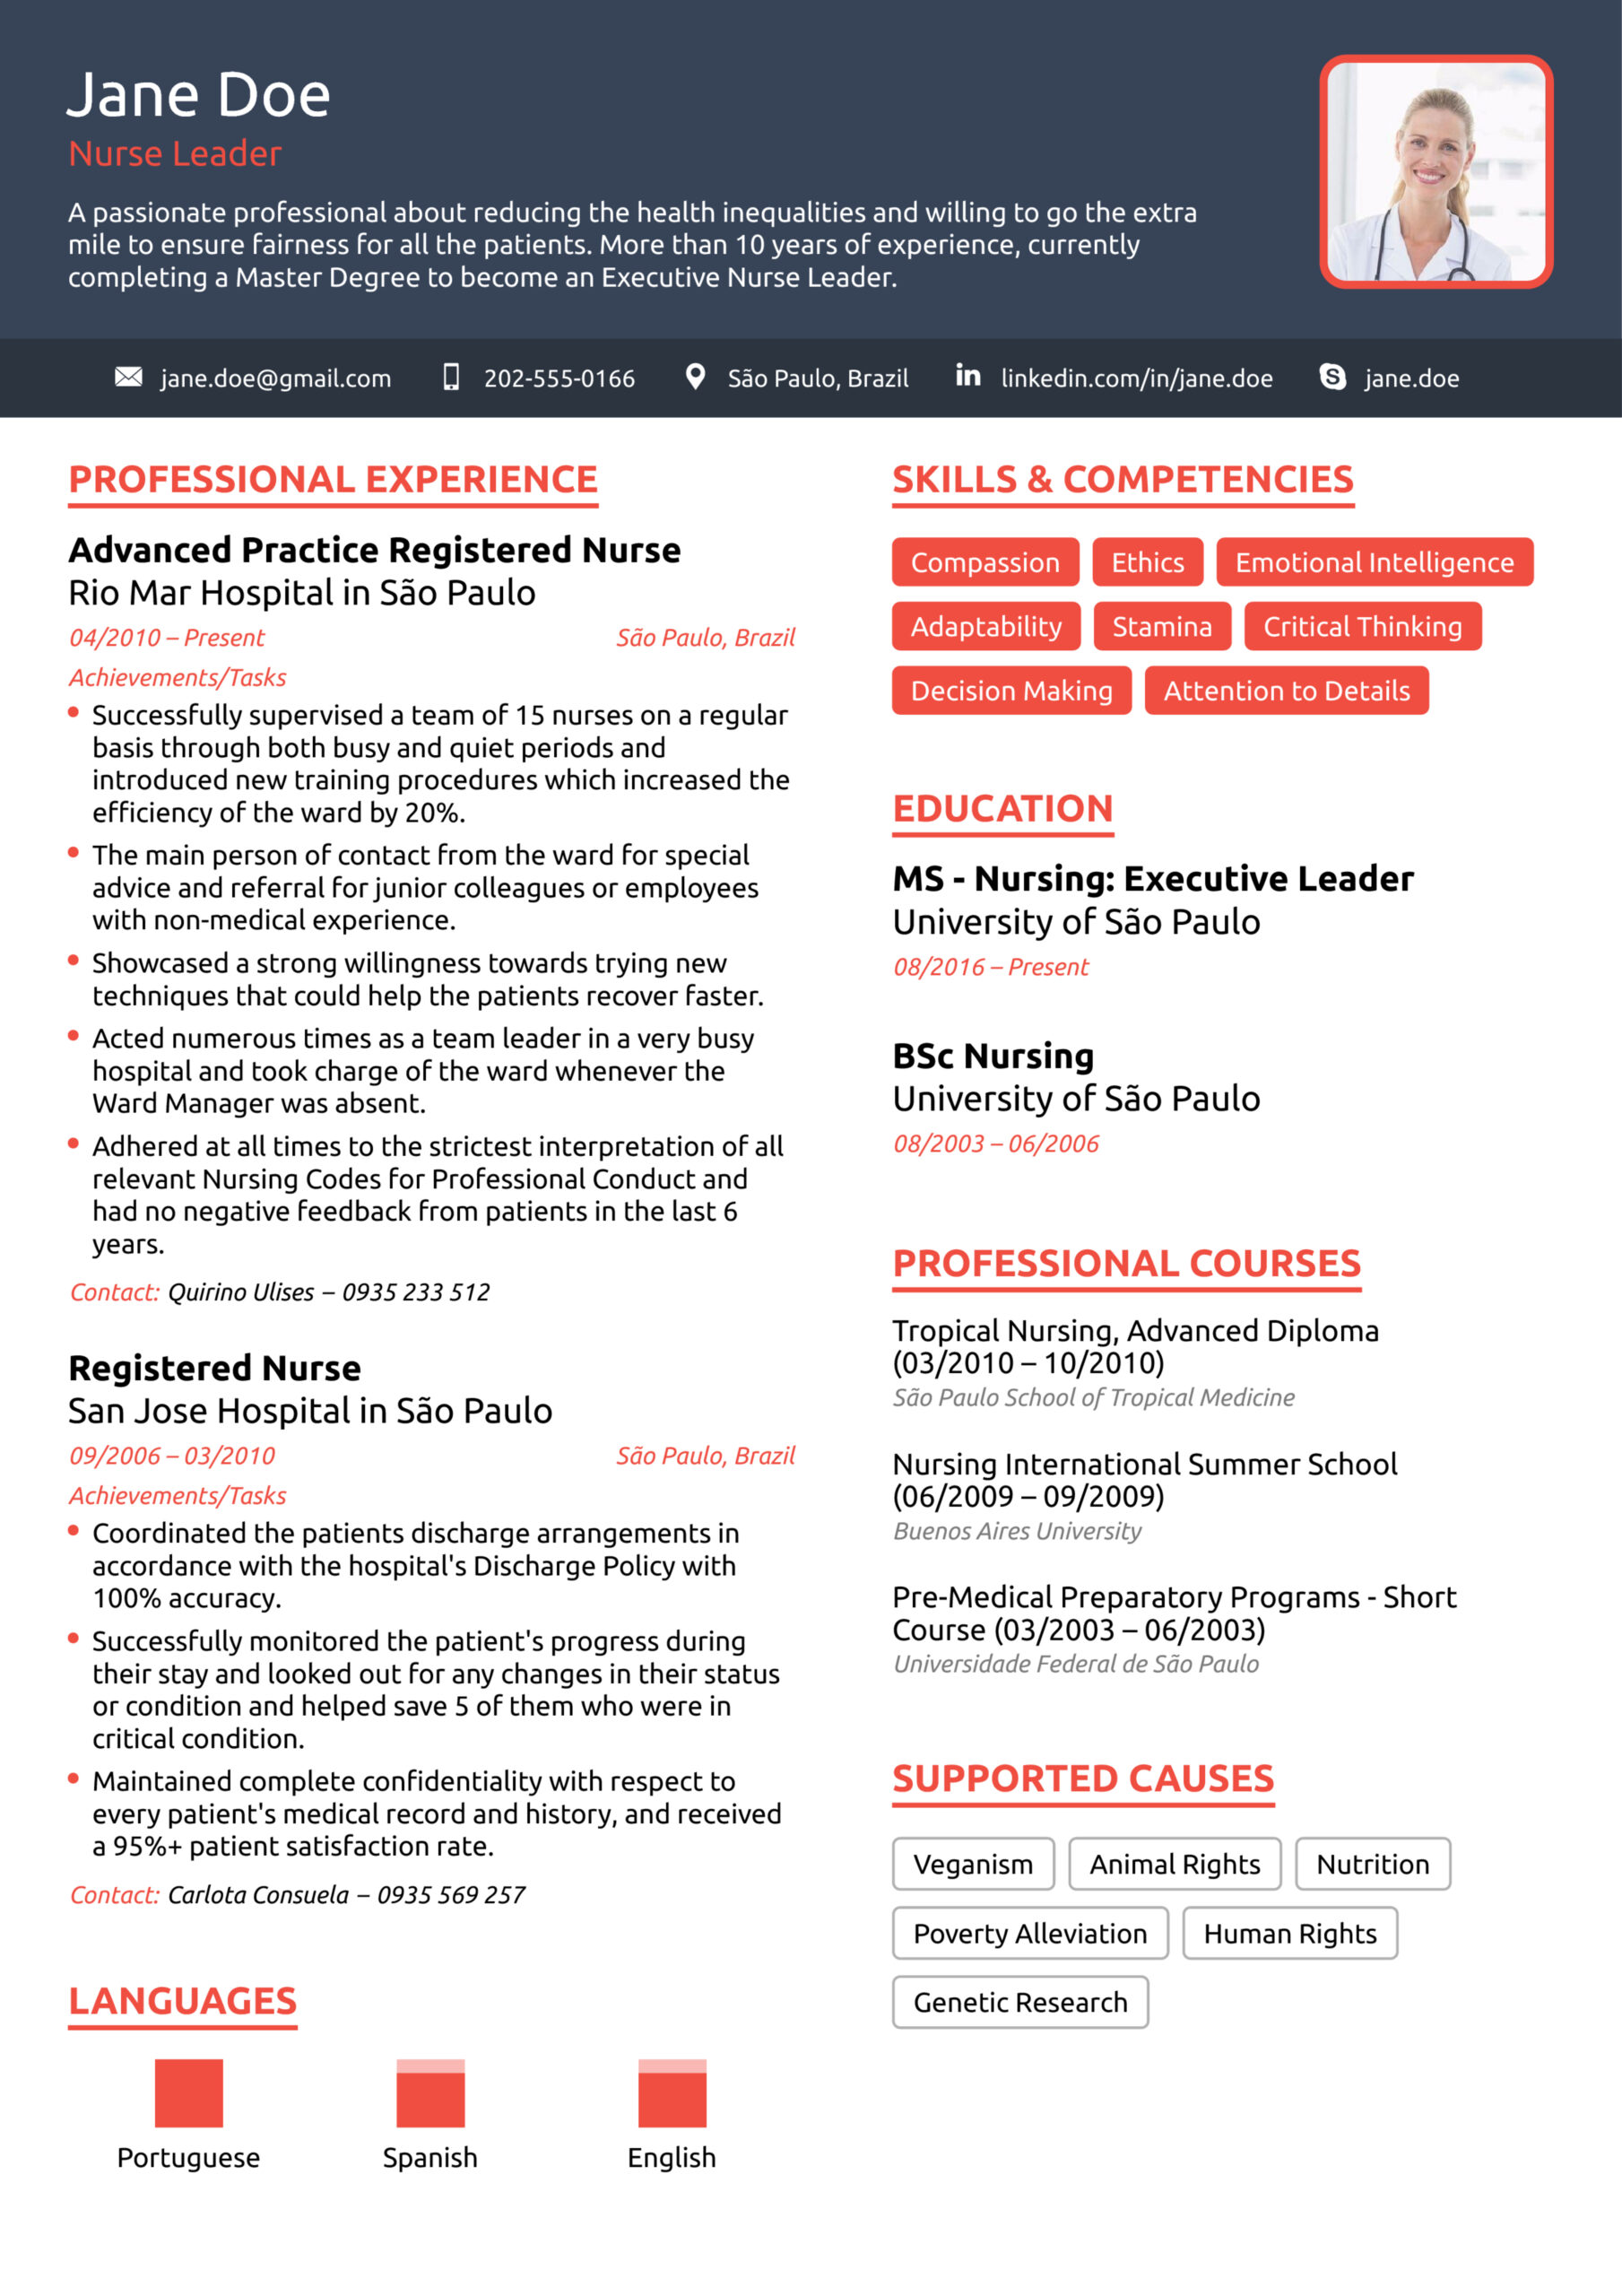 nurse resume example to guide for good nursing examples technology project manager senior Resume Good Nursing Resume Examples